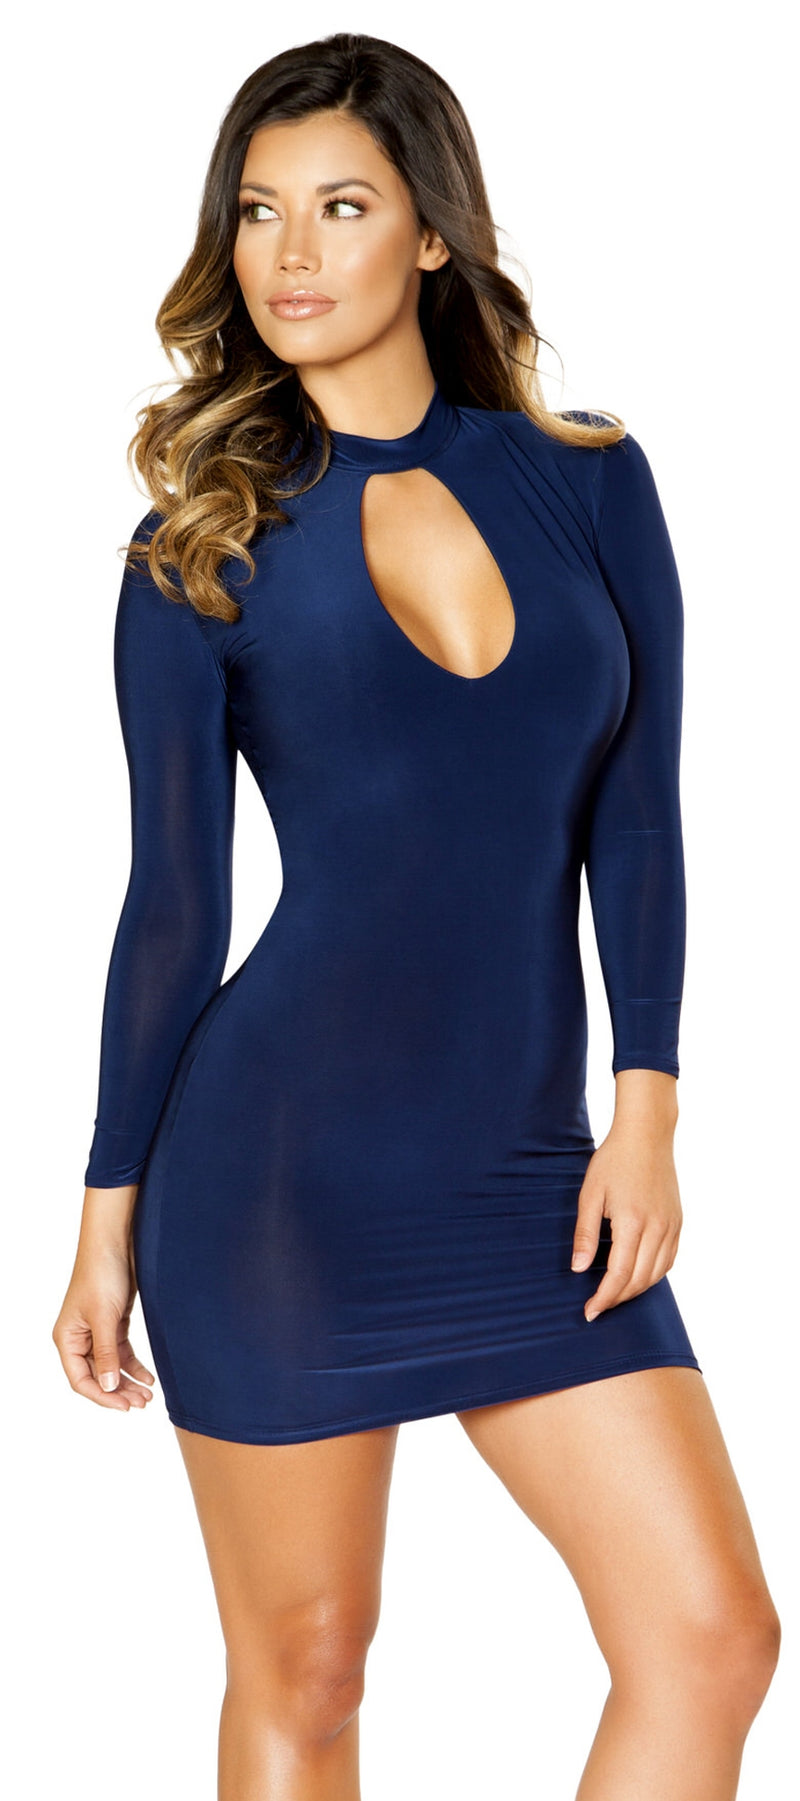 RM-3520 Hot and classy high neck long sleeves mini dress main